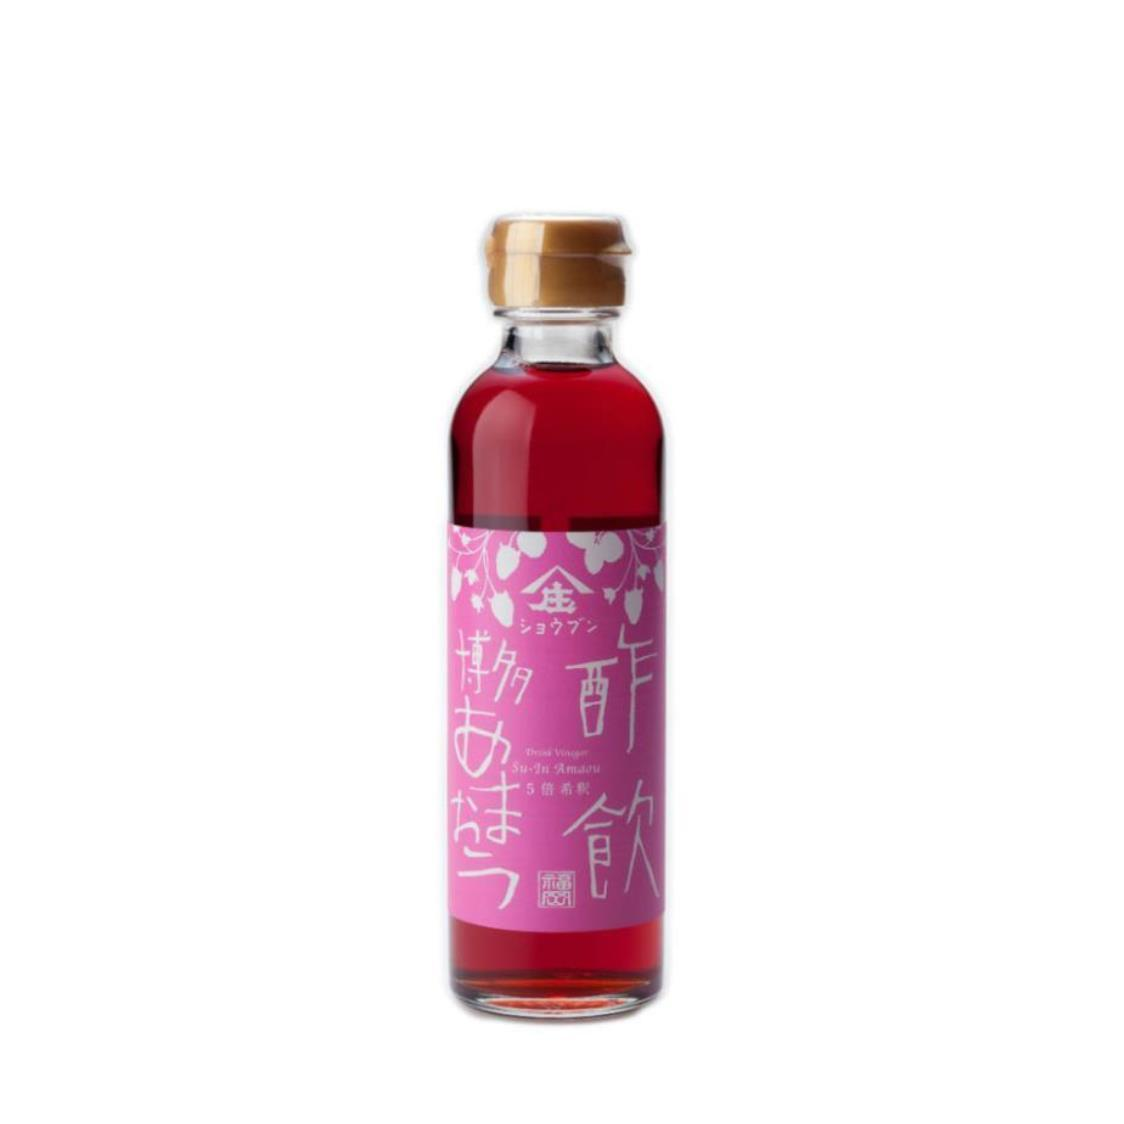 Drinking vinegar SU-IN Grape flavour 200ml Concentrated